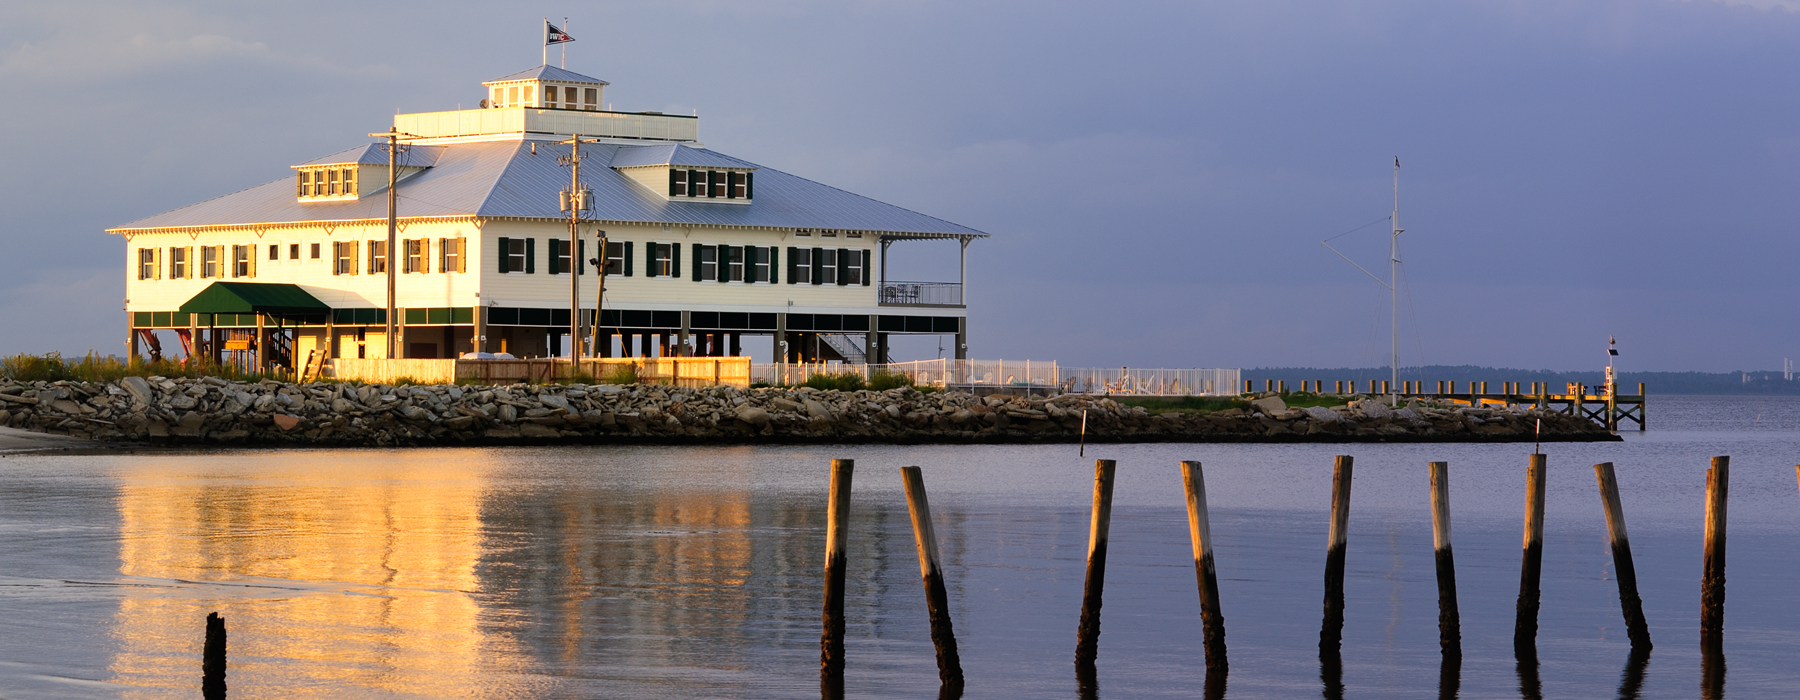 Bay Waveland Yacht Club